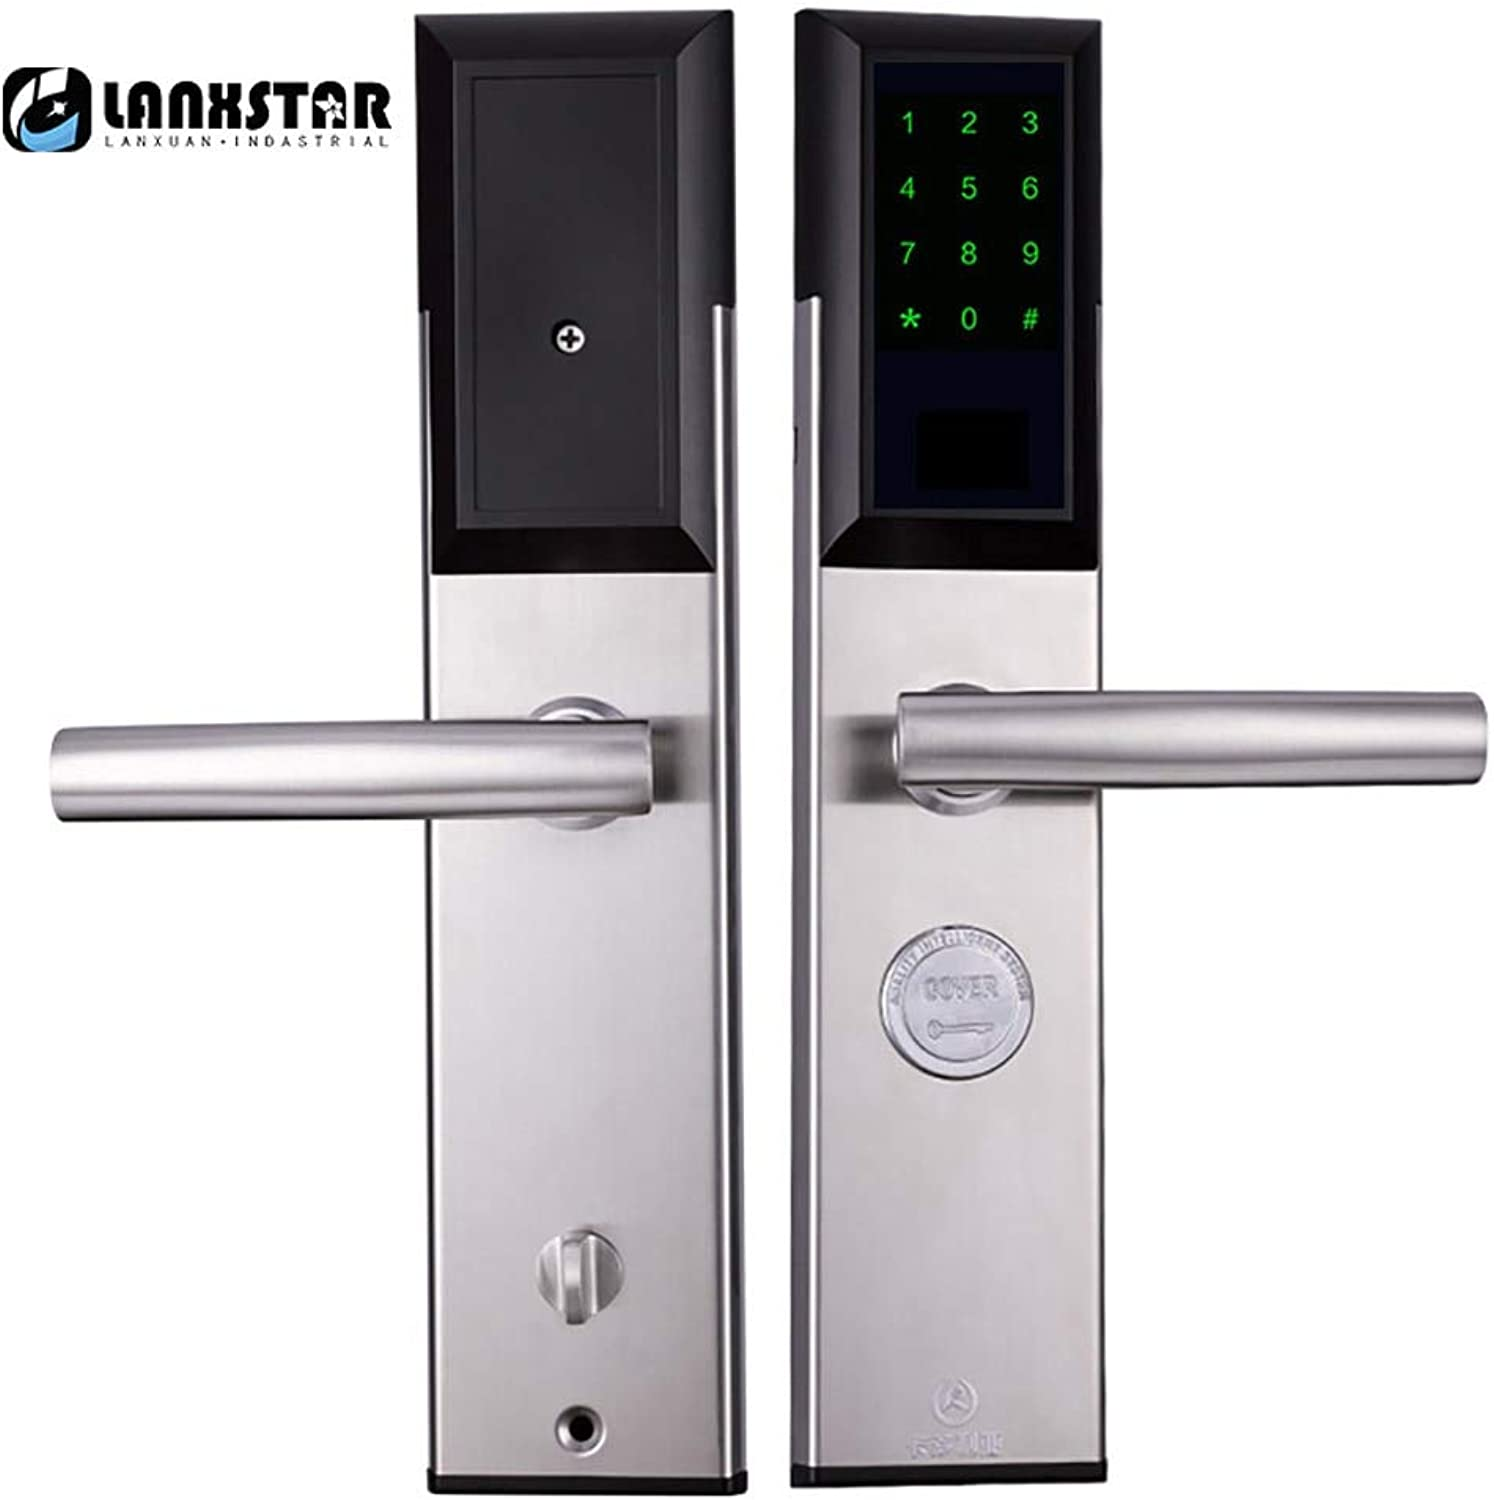 Mobile Phone Remote blueetooth app Unlock Rental Rental Apartment ShortTerm Security Door Code Lock Office Home Smart Lock  (color  gold color Left in)